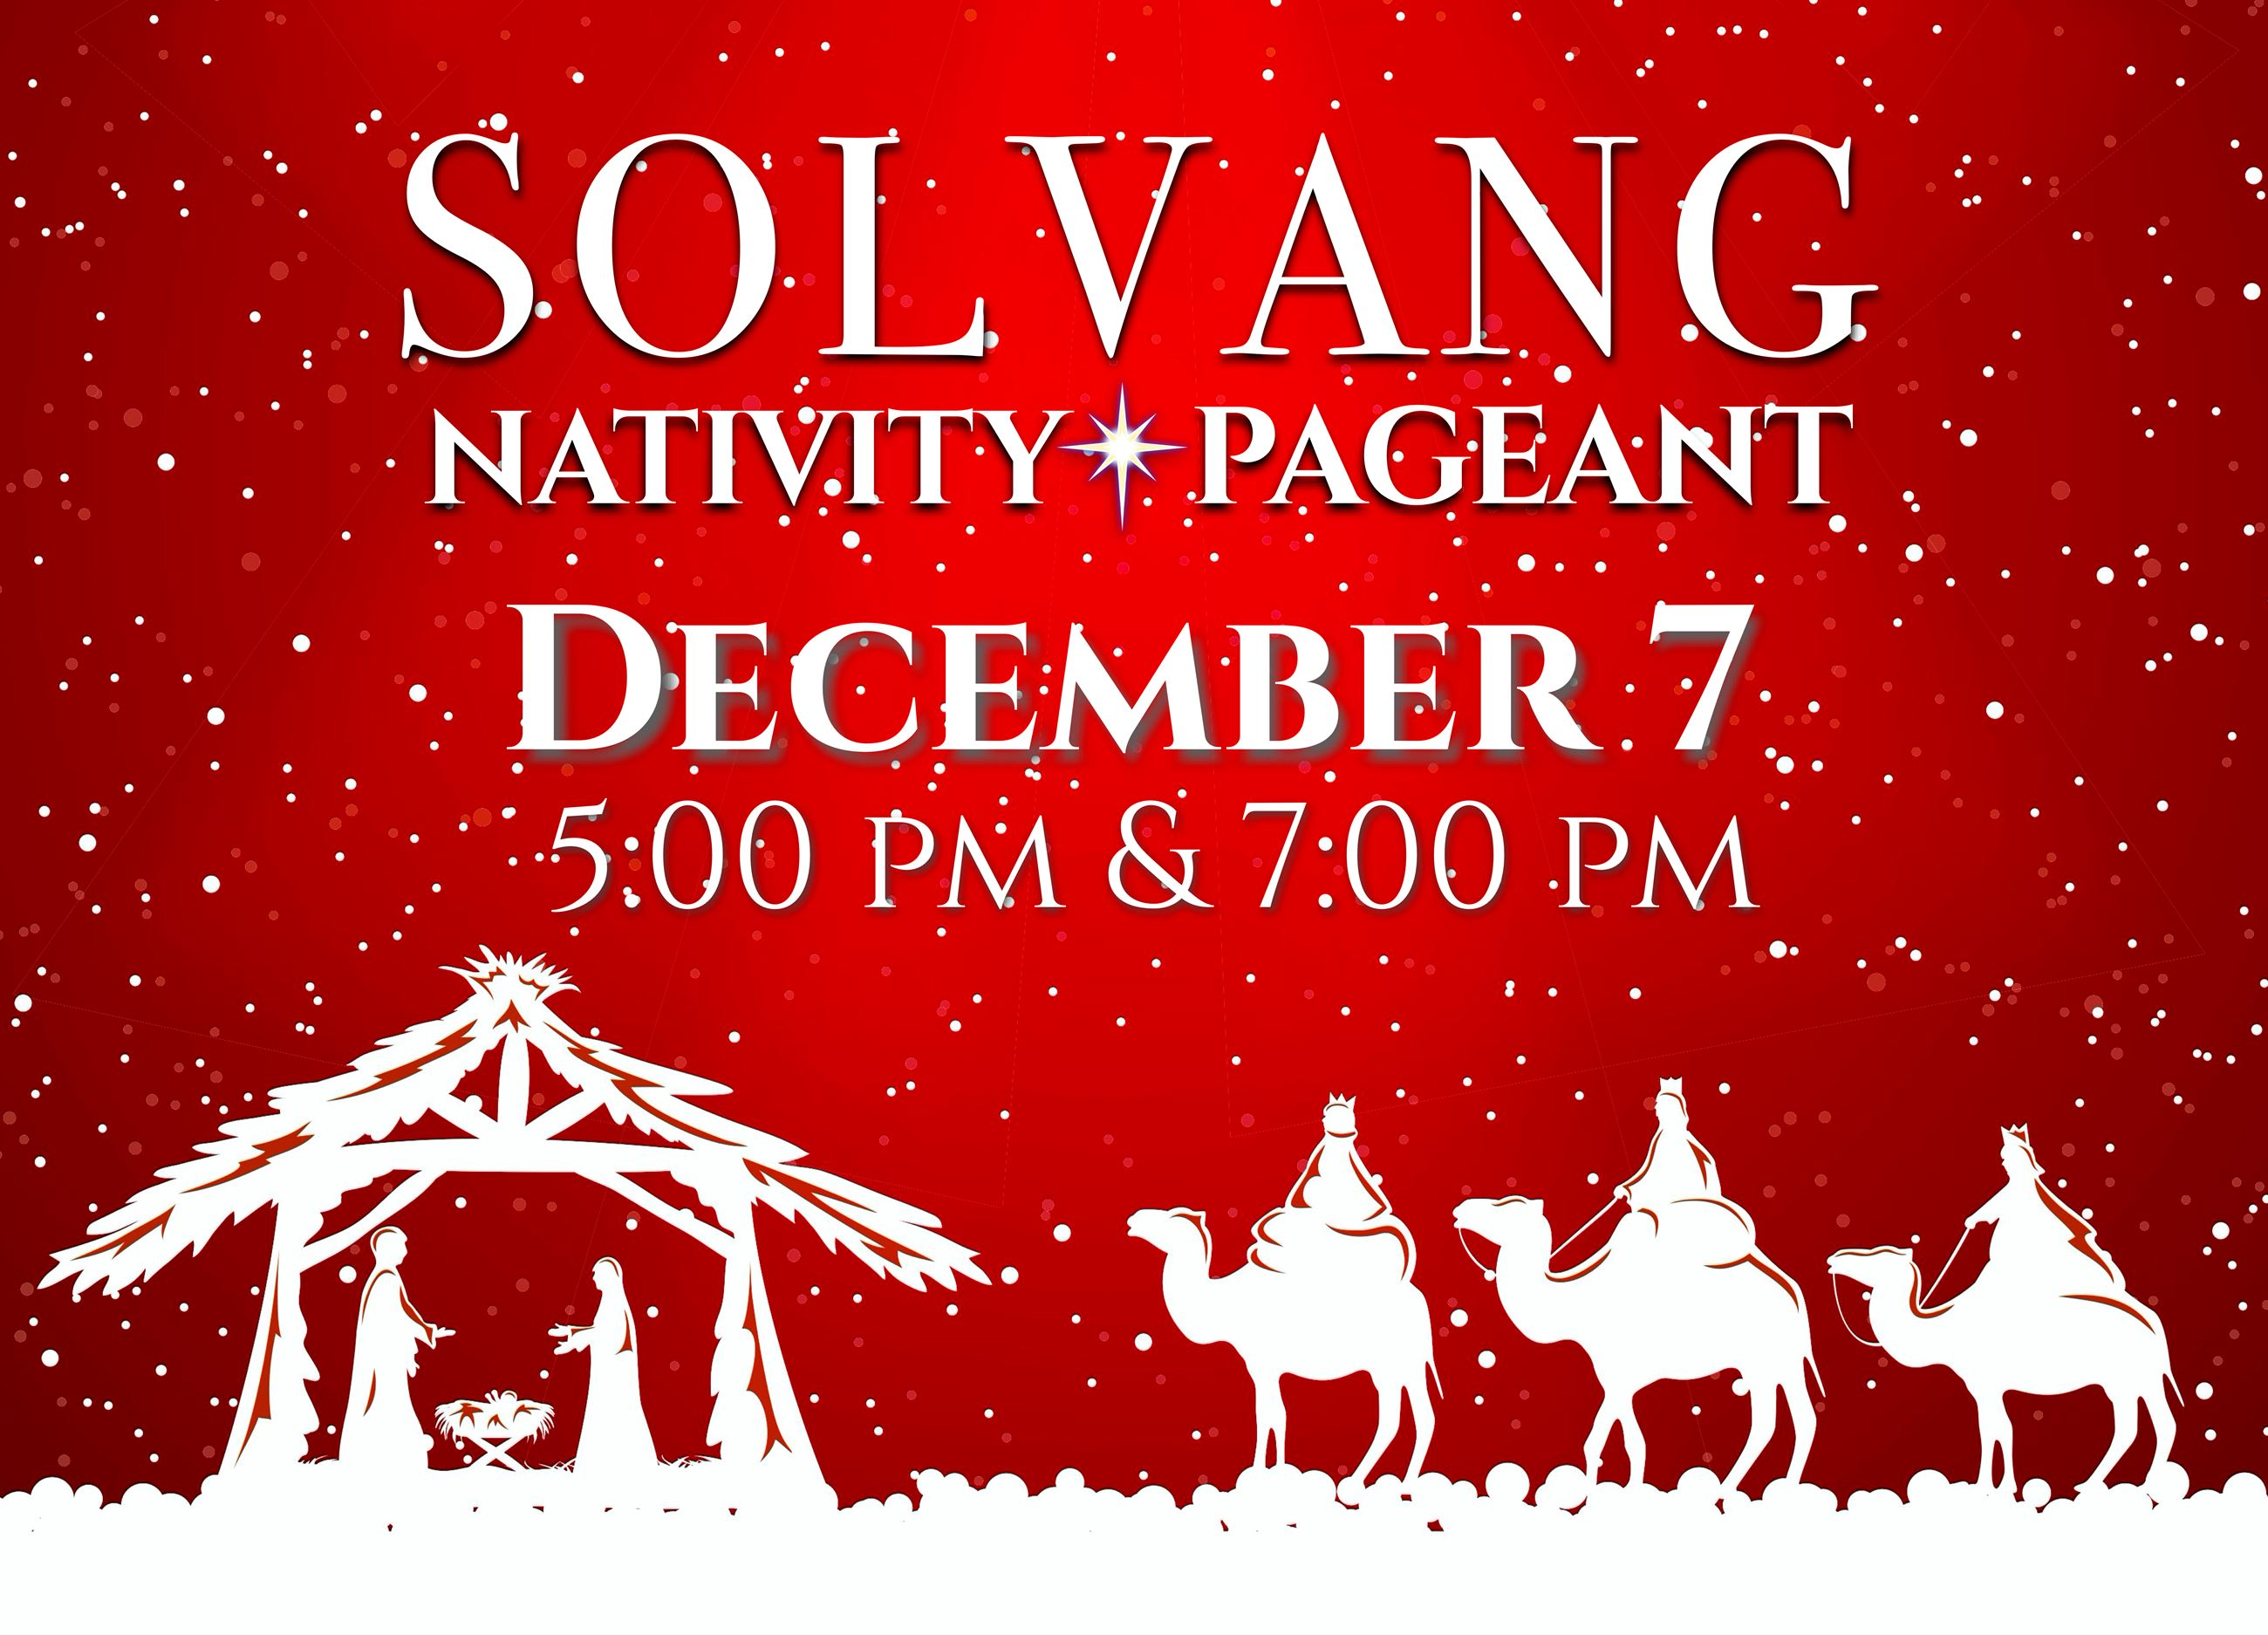 2019 Solvang Nativity Pageant